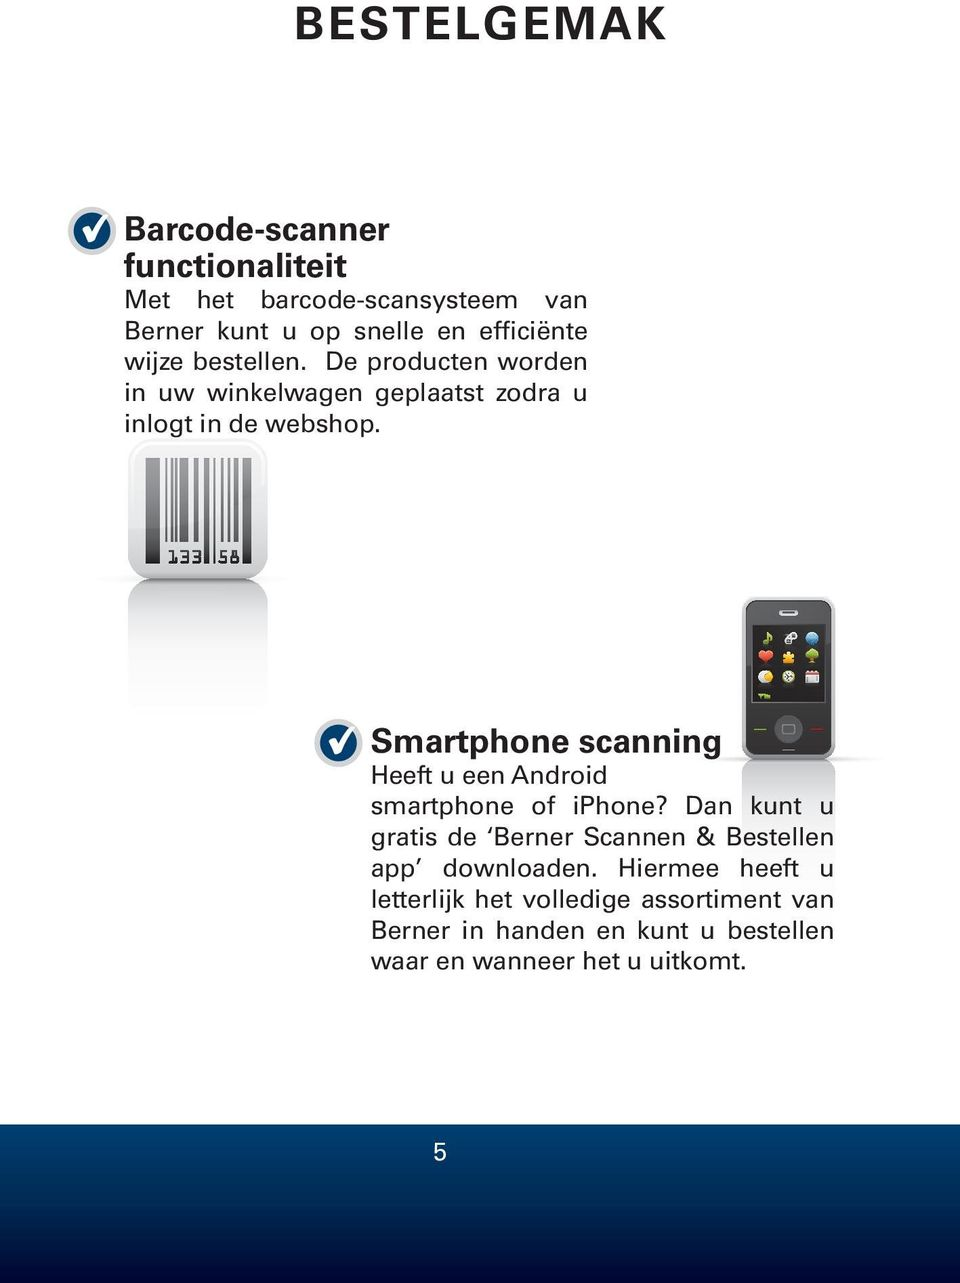 Smartphone scanning Heeft u een Android smartphone of iphone?